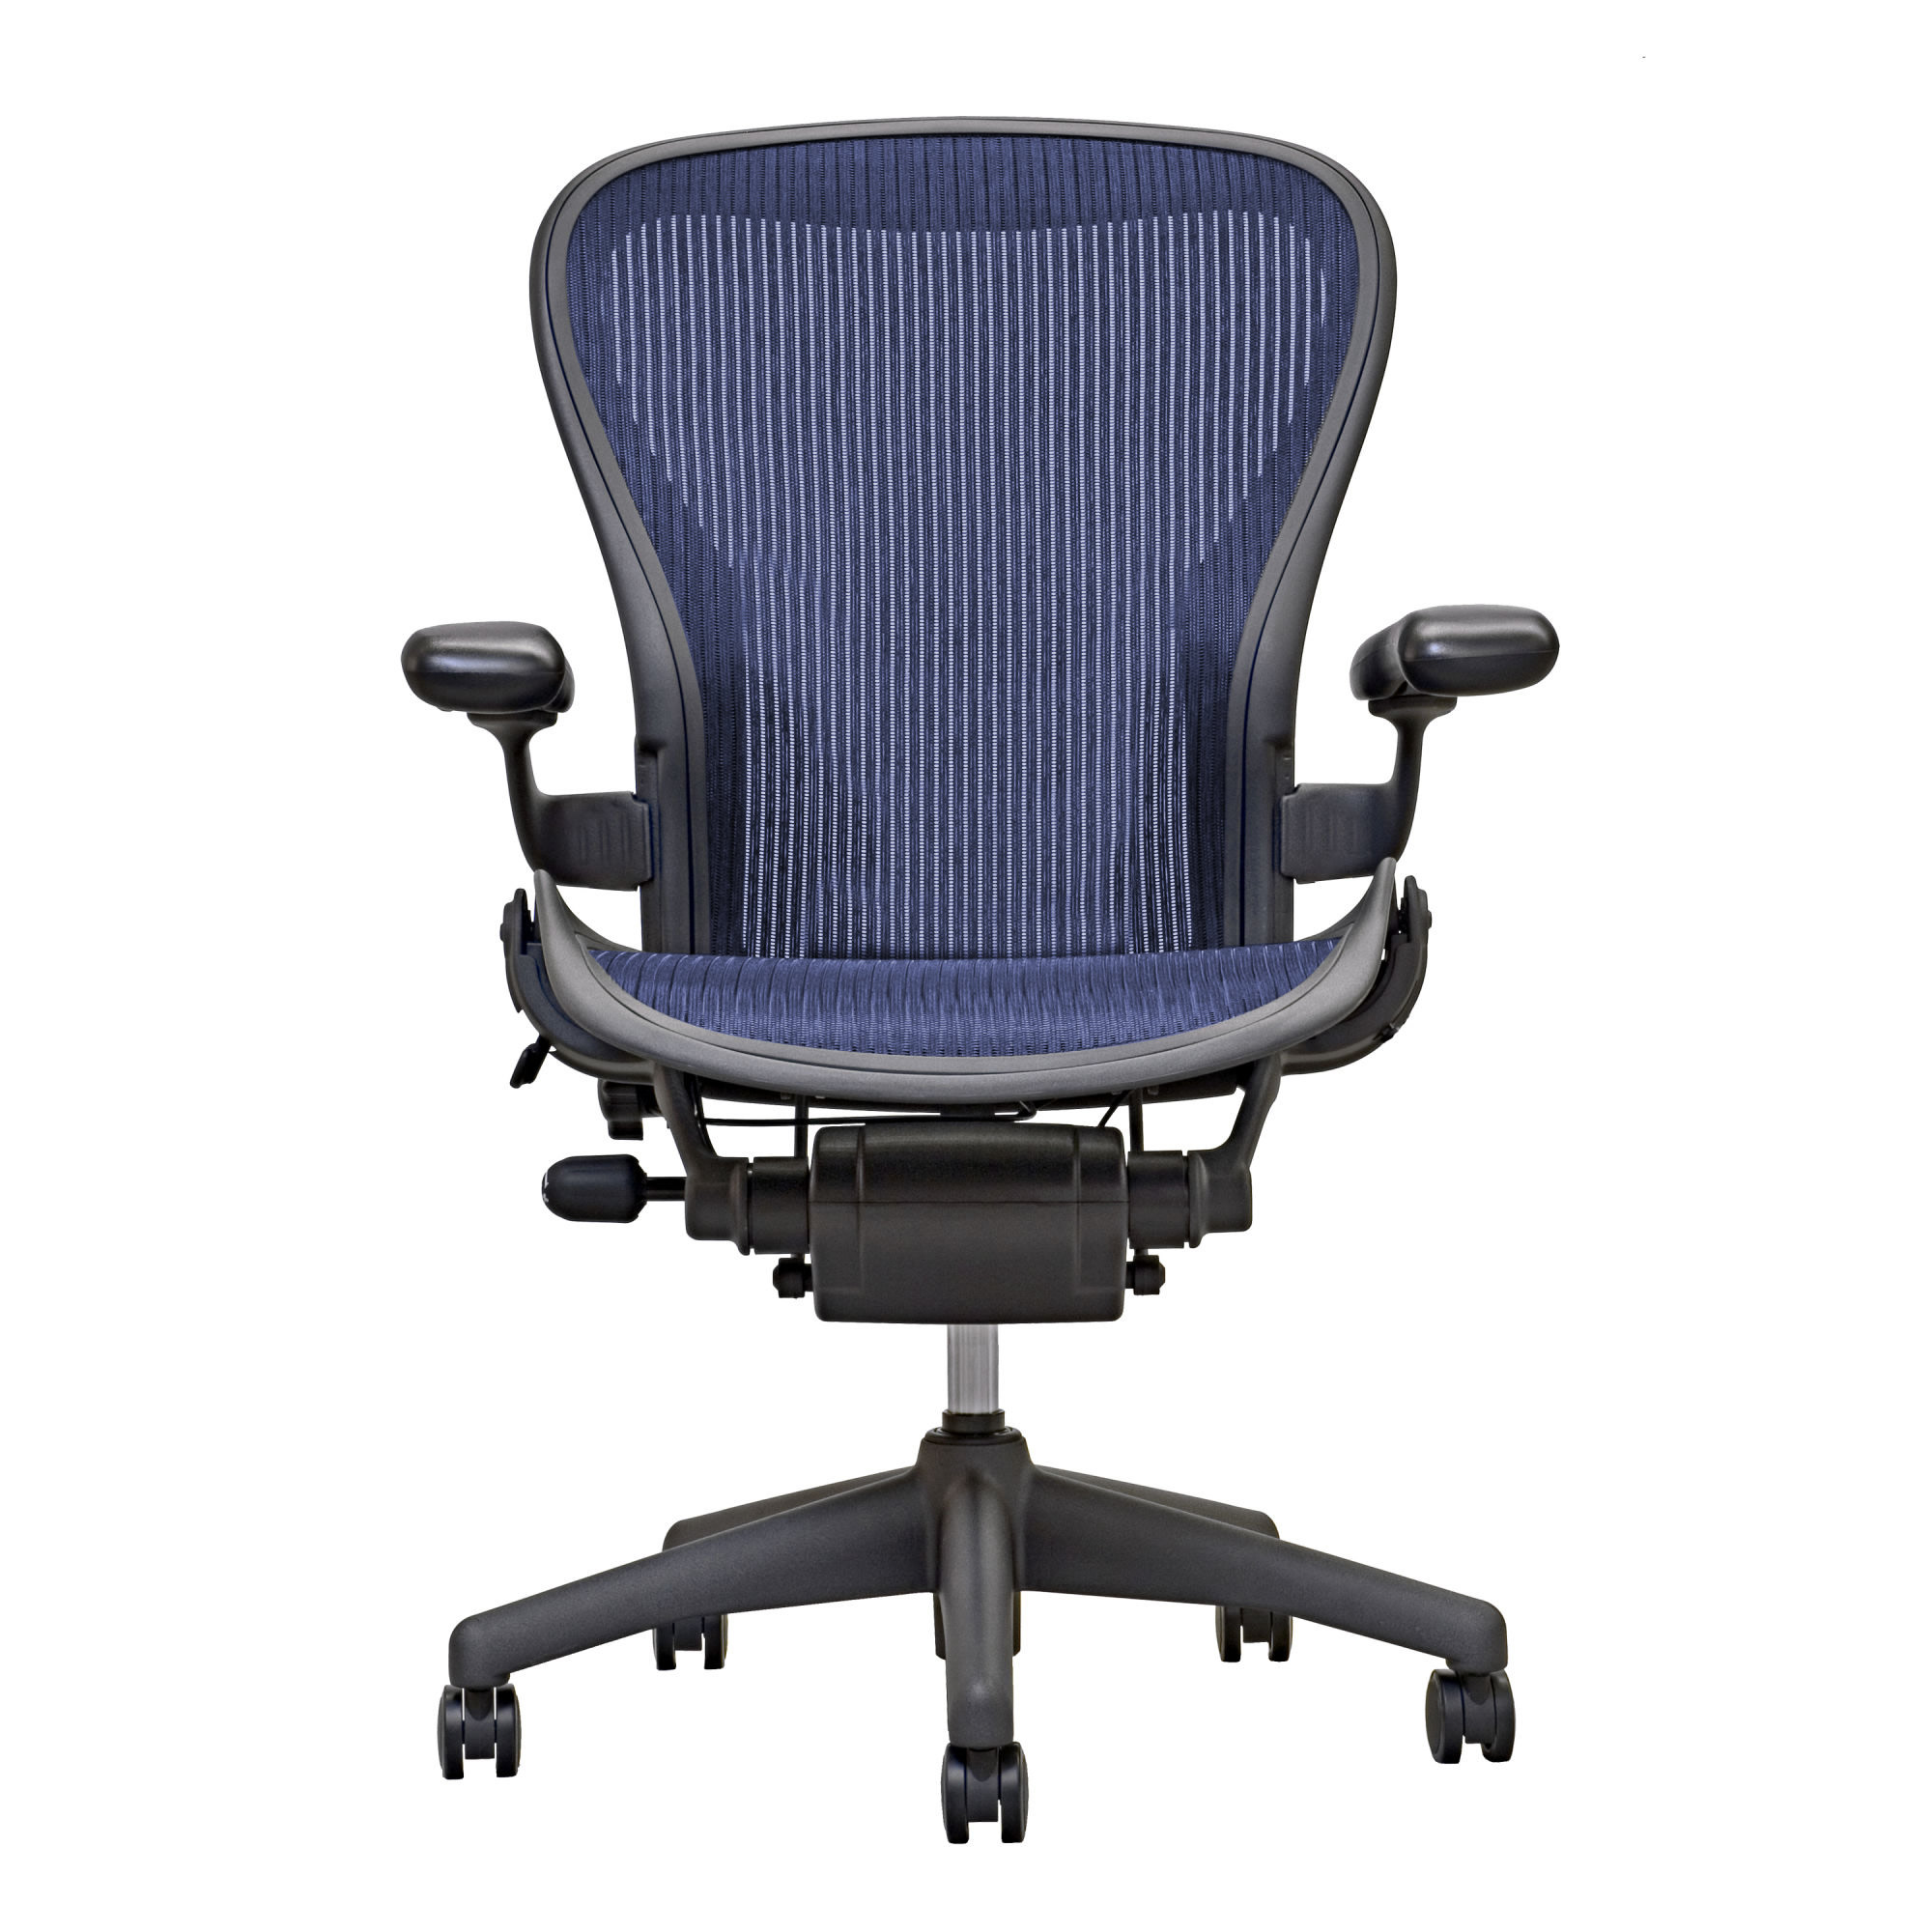 Aeron Aluminum Chairs - 3392731456_2696030727_3452160495_2366007697_aeron-chair-by-herman-miller-basic-sapphire_Great Aeron Aluminum Chairs - 3392731456_2696030727_3452160495_2366007697_aeron-chair-by-herman-miller-basic-sapphire  Pictures_16386.jpg?t\u003d1408052304